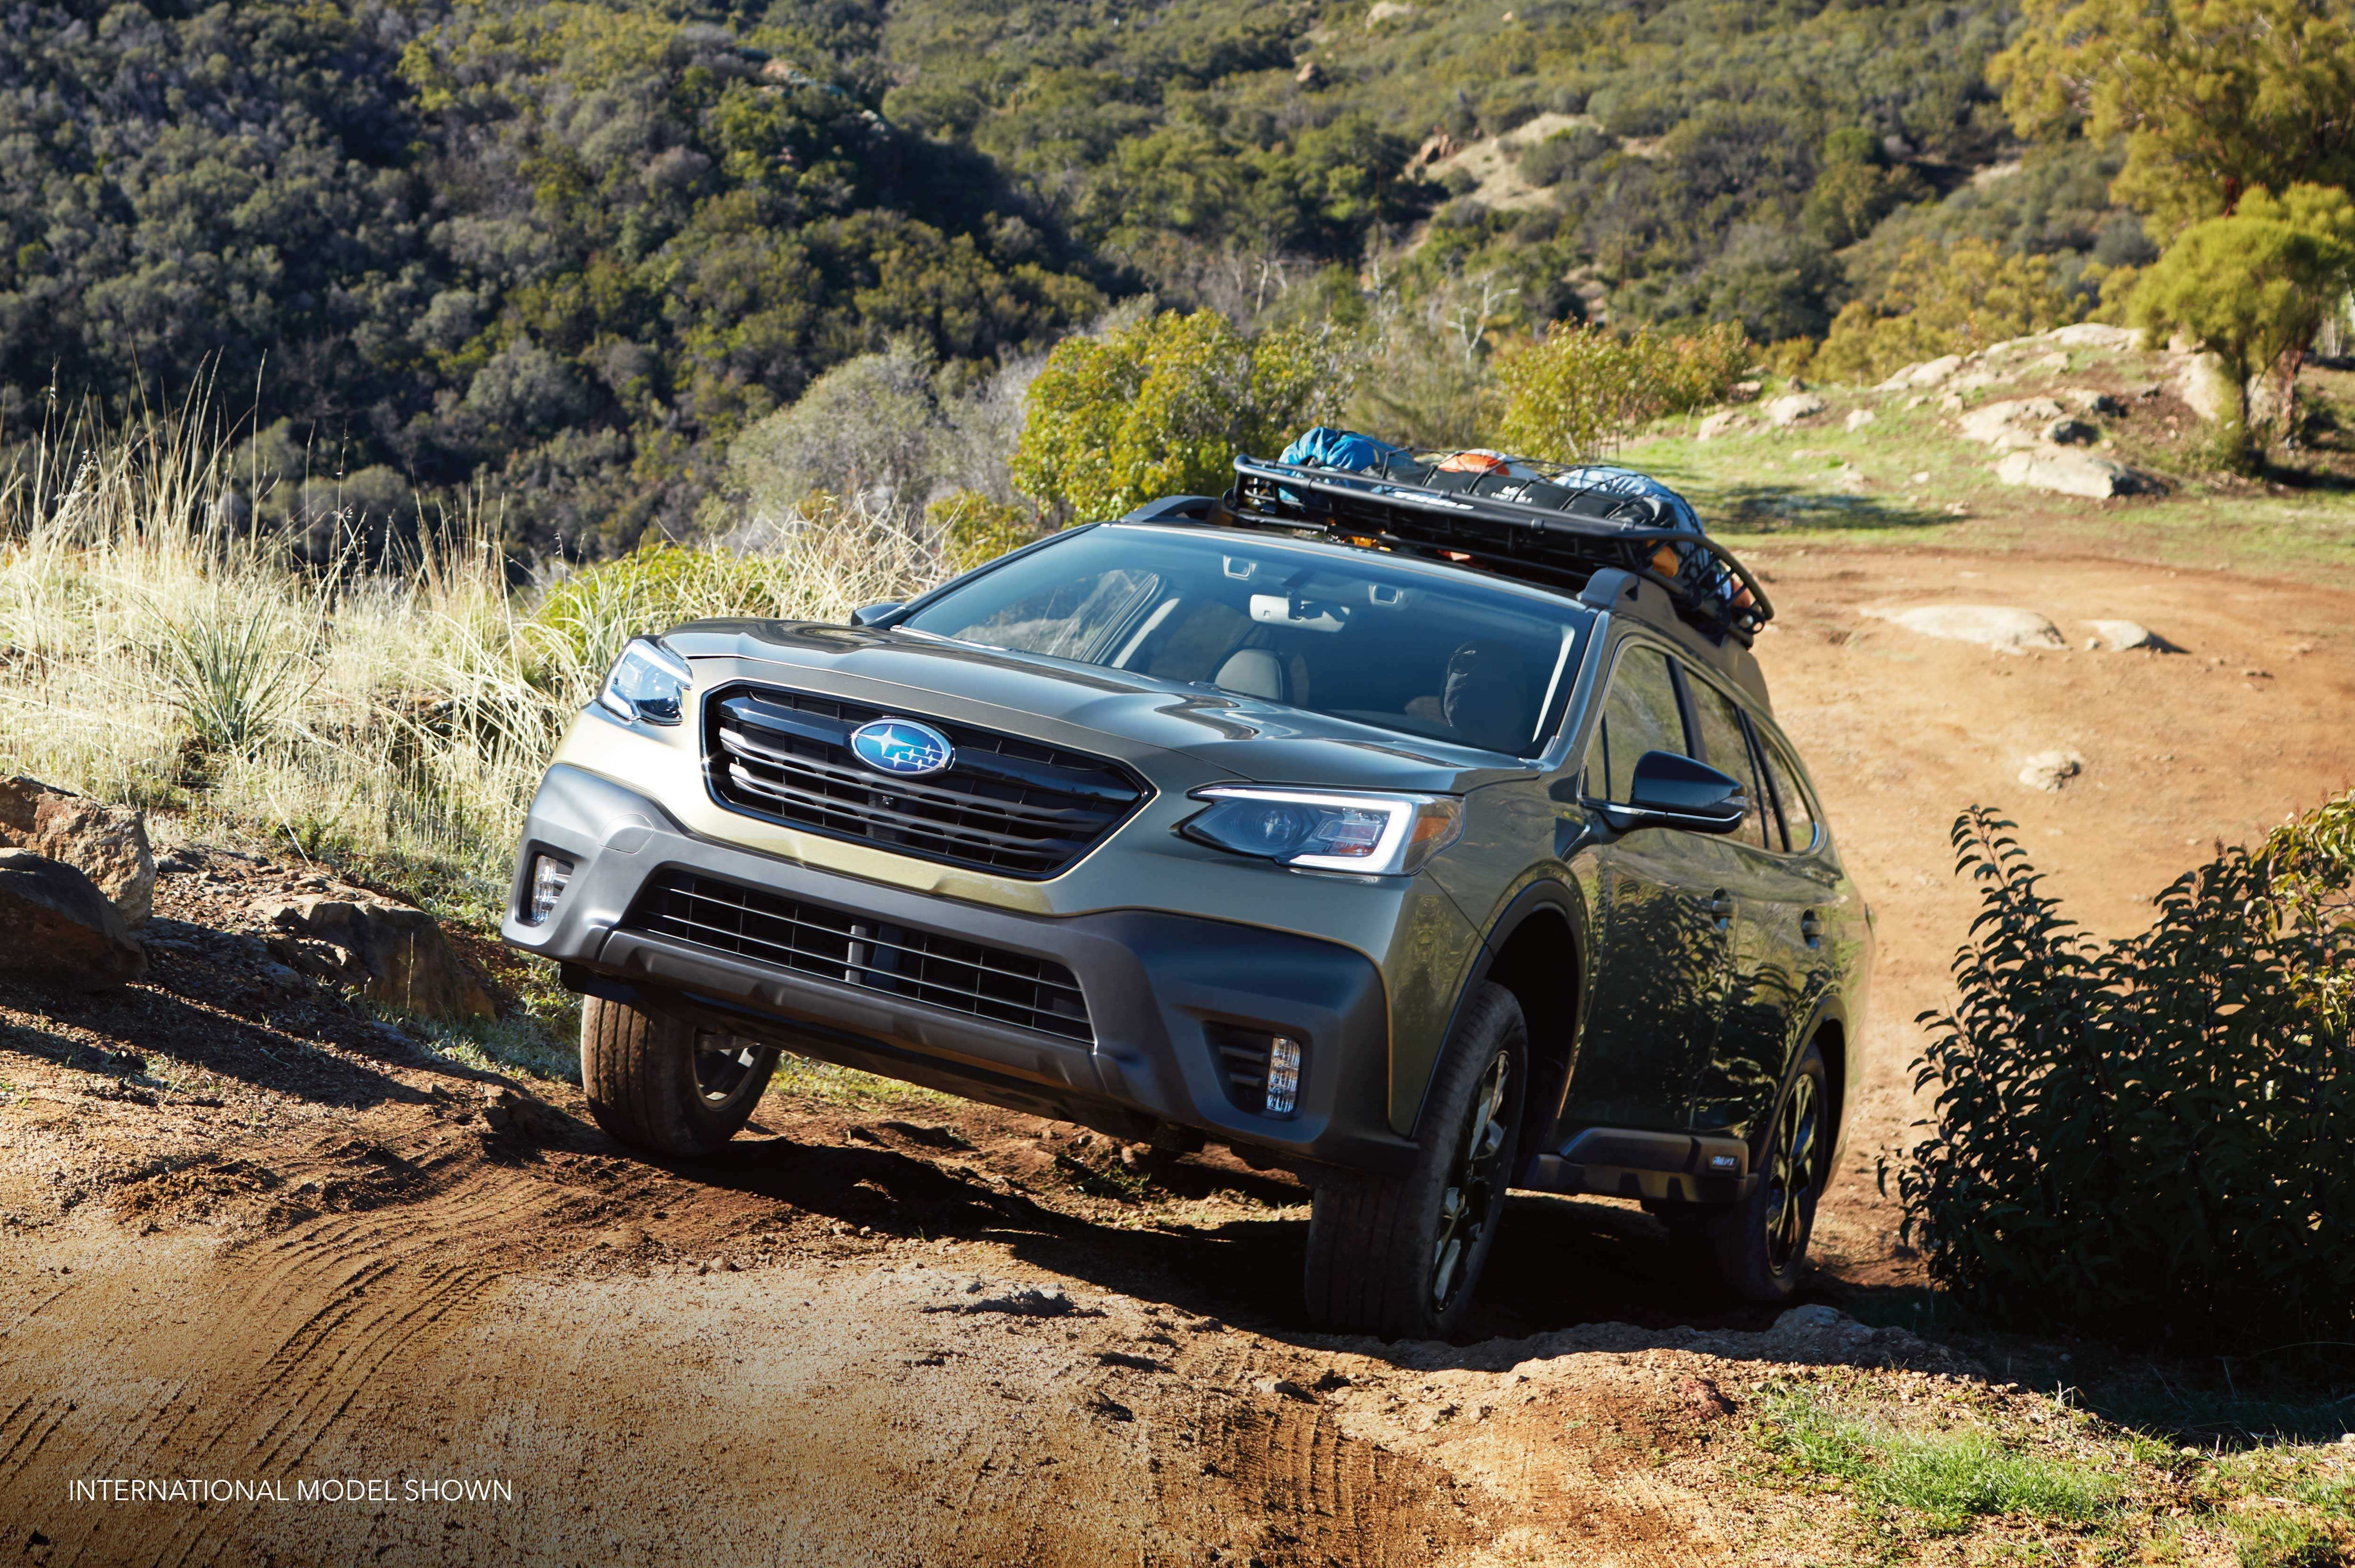 46 Concept of Subaru Outback 2020 New Review with Subaru Outback 2020